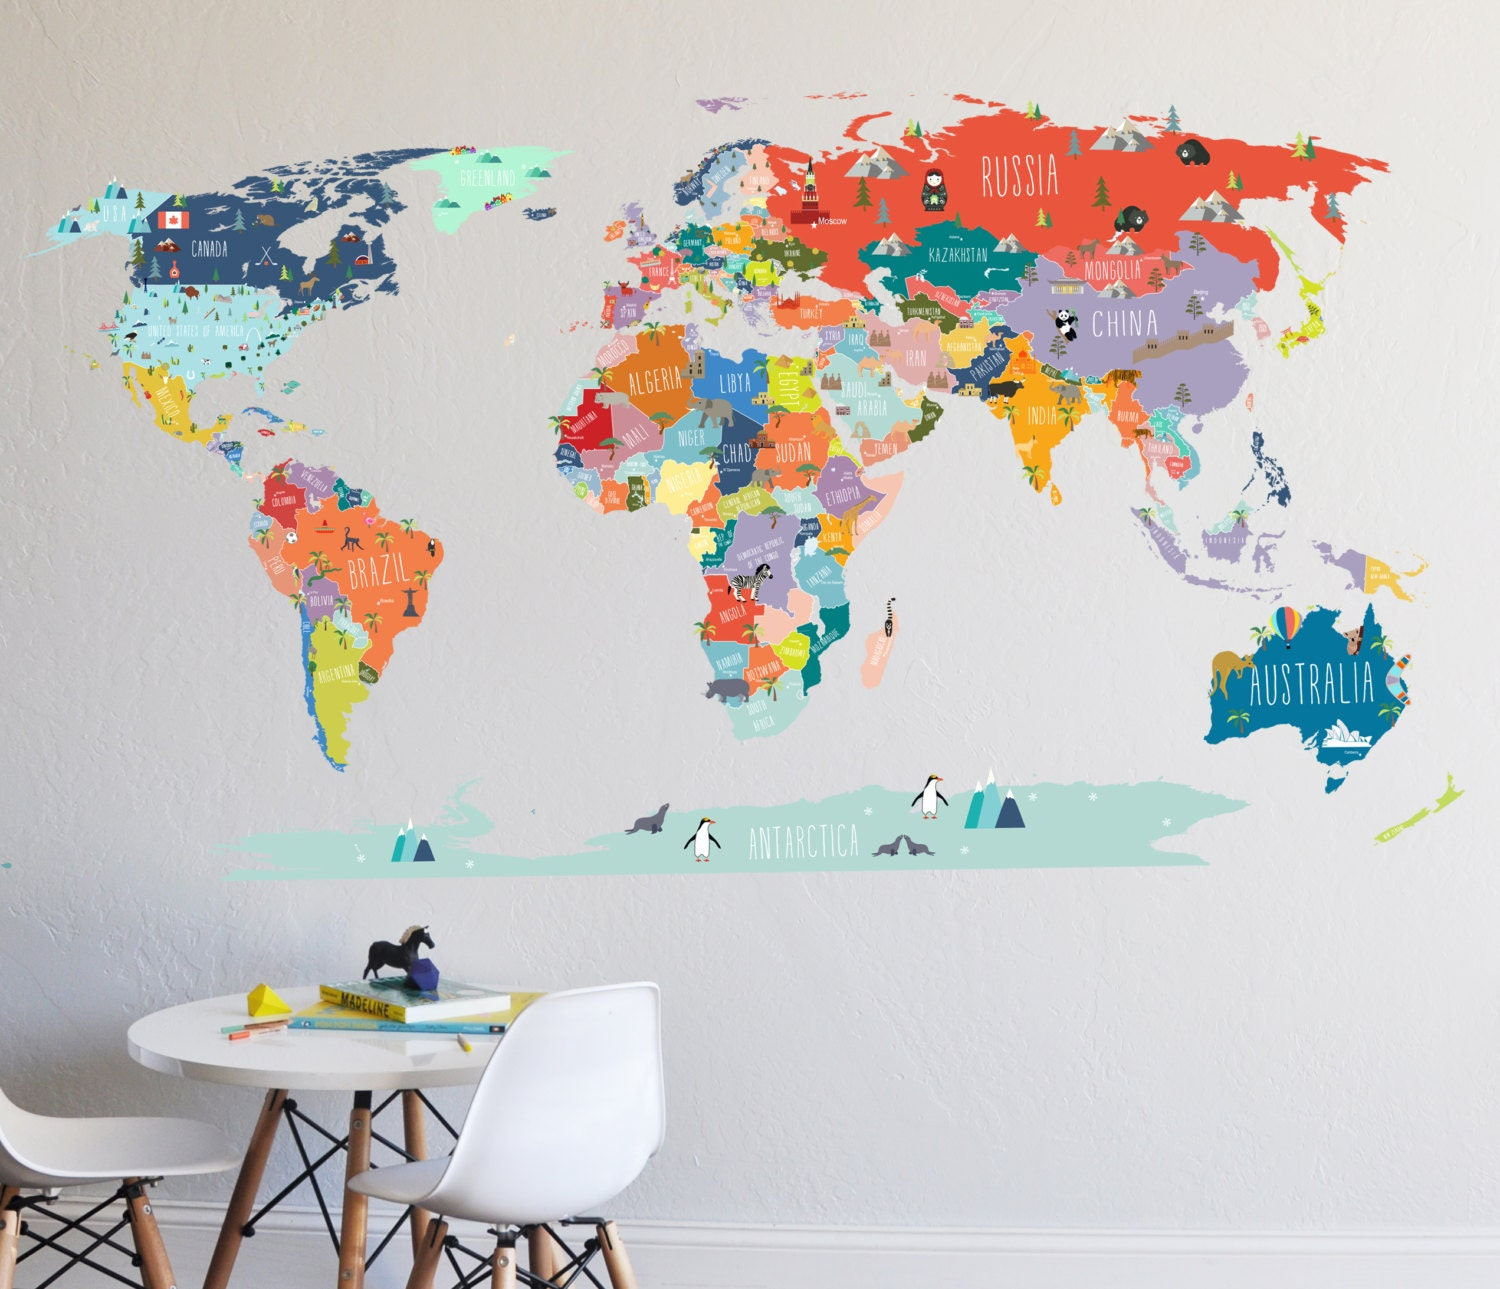 Wall Decal World Map Interactive Map Wall Sticker Room - World interactive map